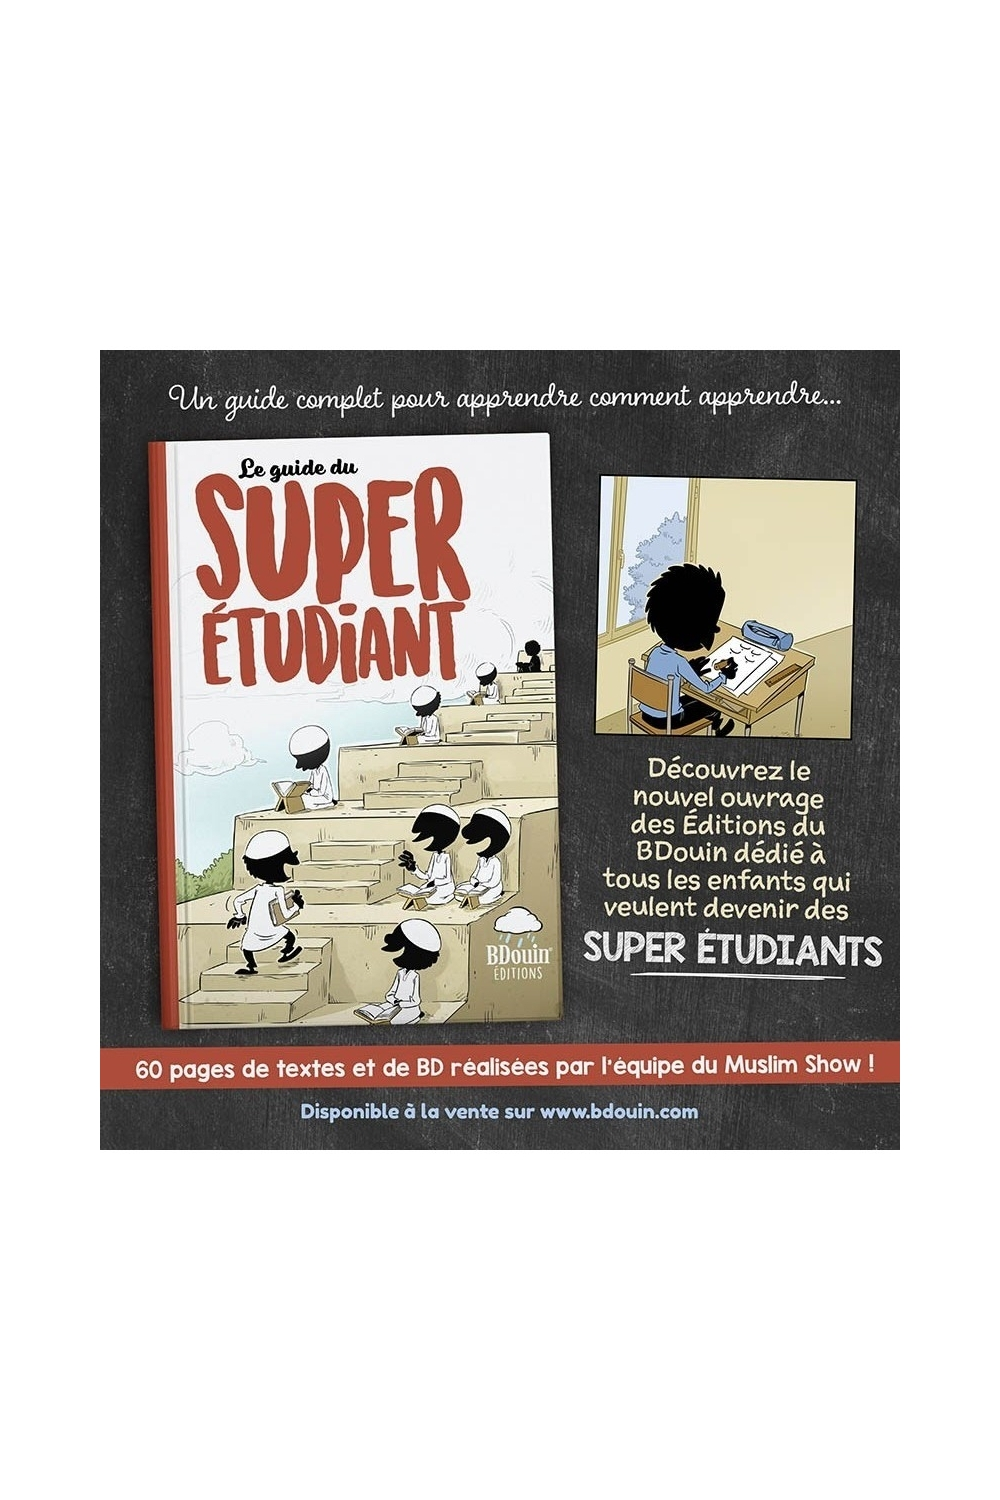 Le guide du Super étudiant - BDOUIN Editions